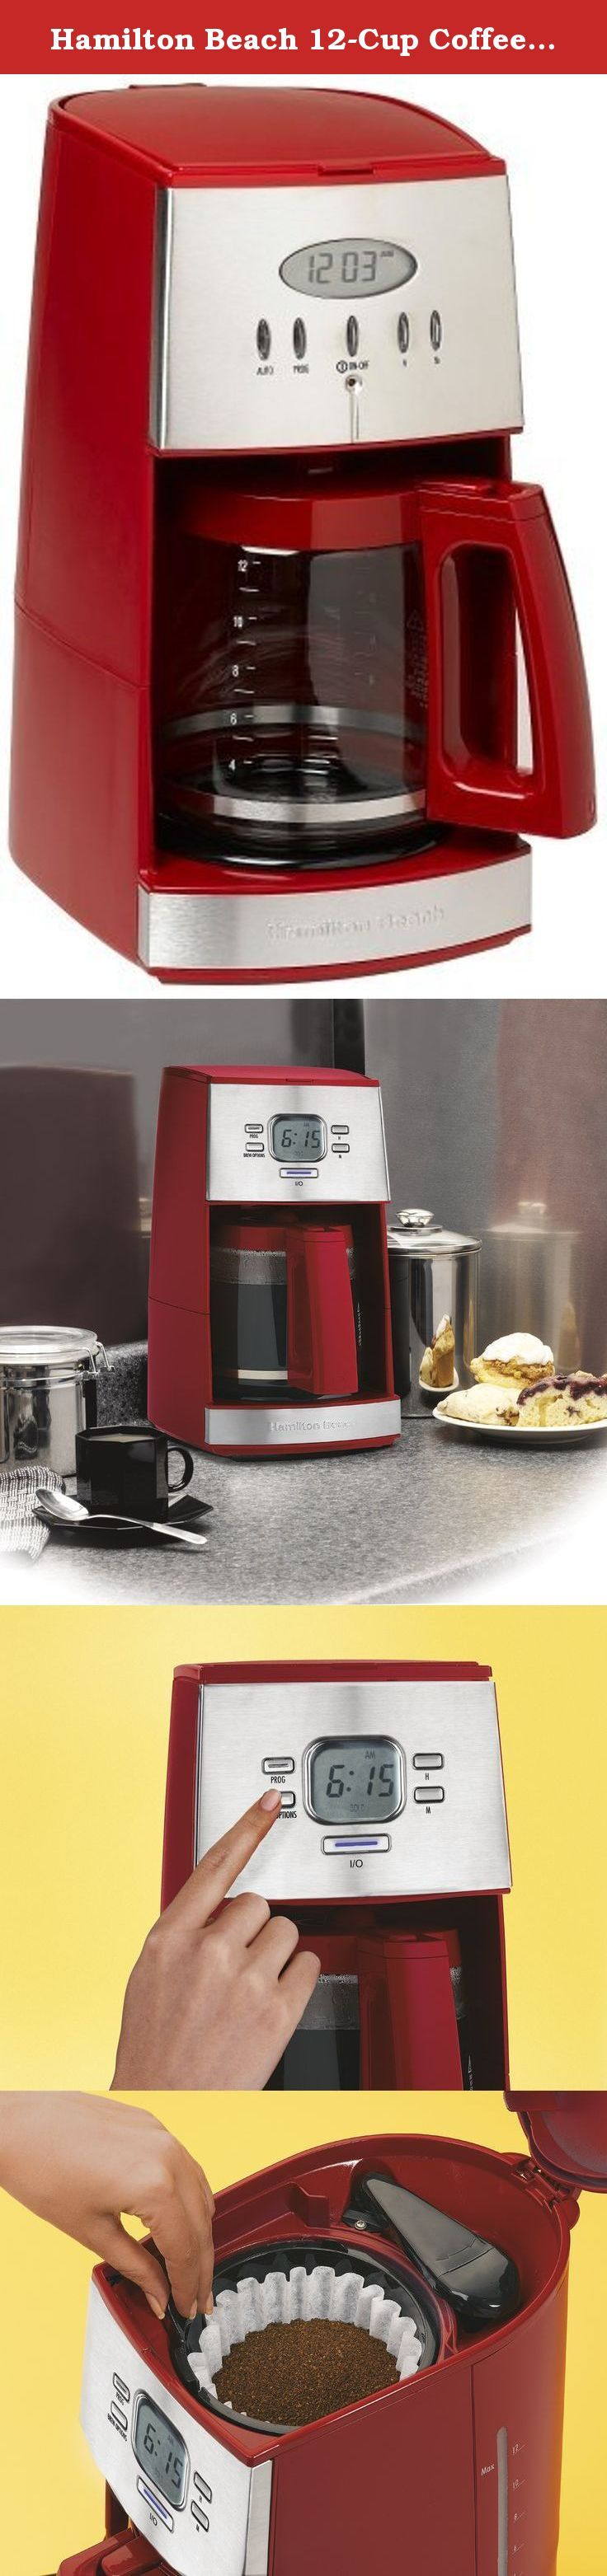 Hamilton Beach 12-Cup Coffee Maker with Glass Carafe, Ensemble Red (43253RA). With its sleek contemporary styling, this 12-cup coffeemaker not only looks good on the kitchen counter, but it also provides an array of convenient features. The machine's user-friendly control panel and digital display ensure ease of use, while its programmable clock/timer function allows for waking up to the aroma of freshly brewed coffee. A glass carafe comes included, complete with a stay-cool handle...